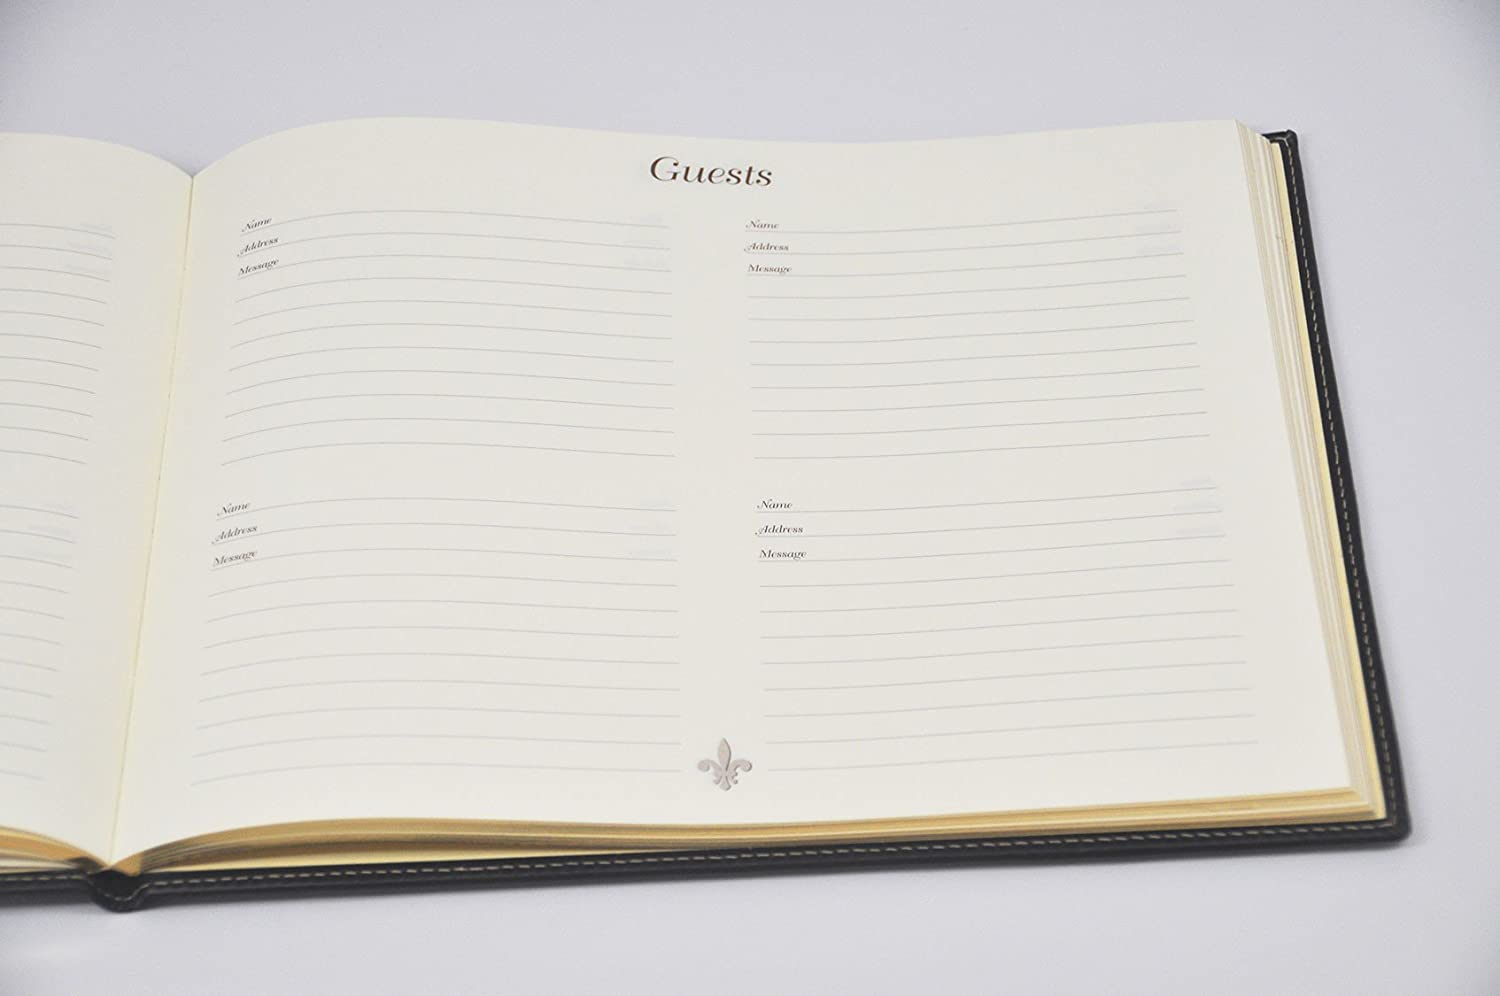 Gold Frame Italian Leather Guest Book from Fiorentina with Gilt-edged Pages